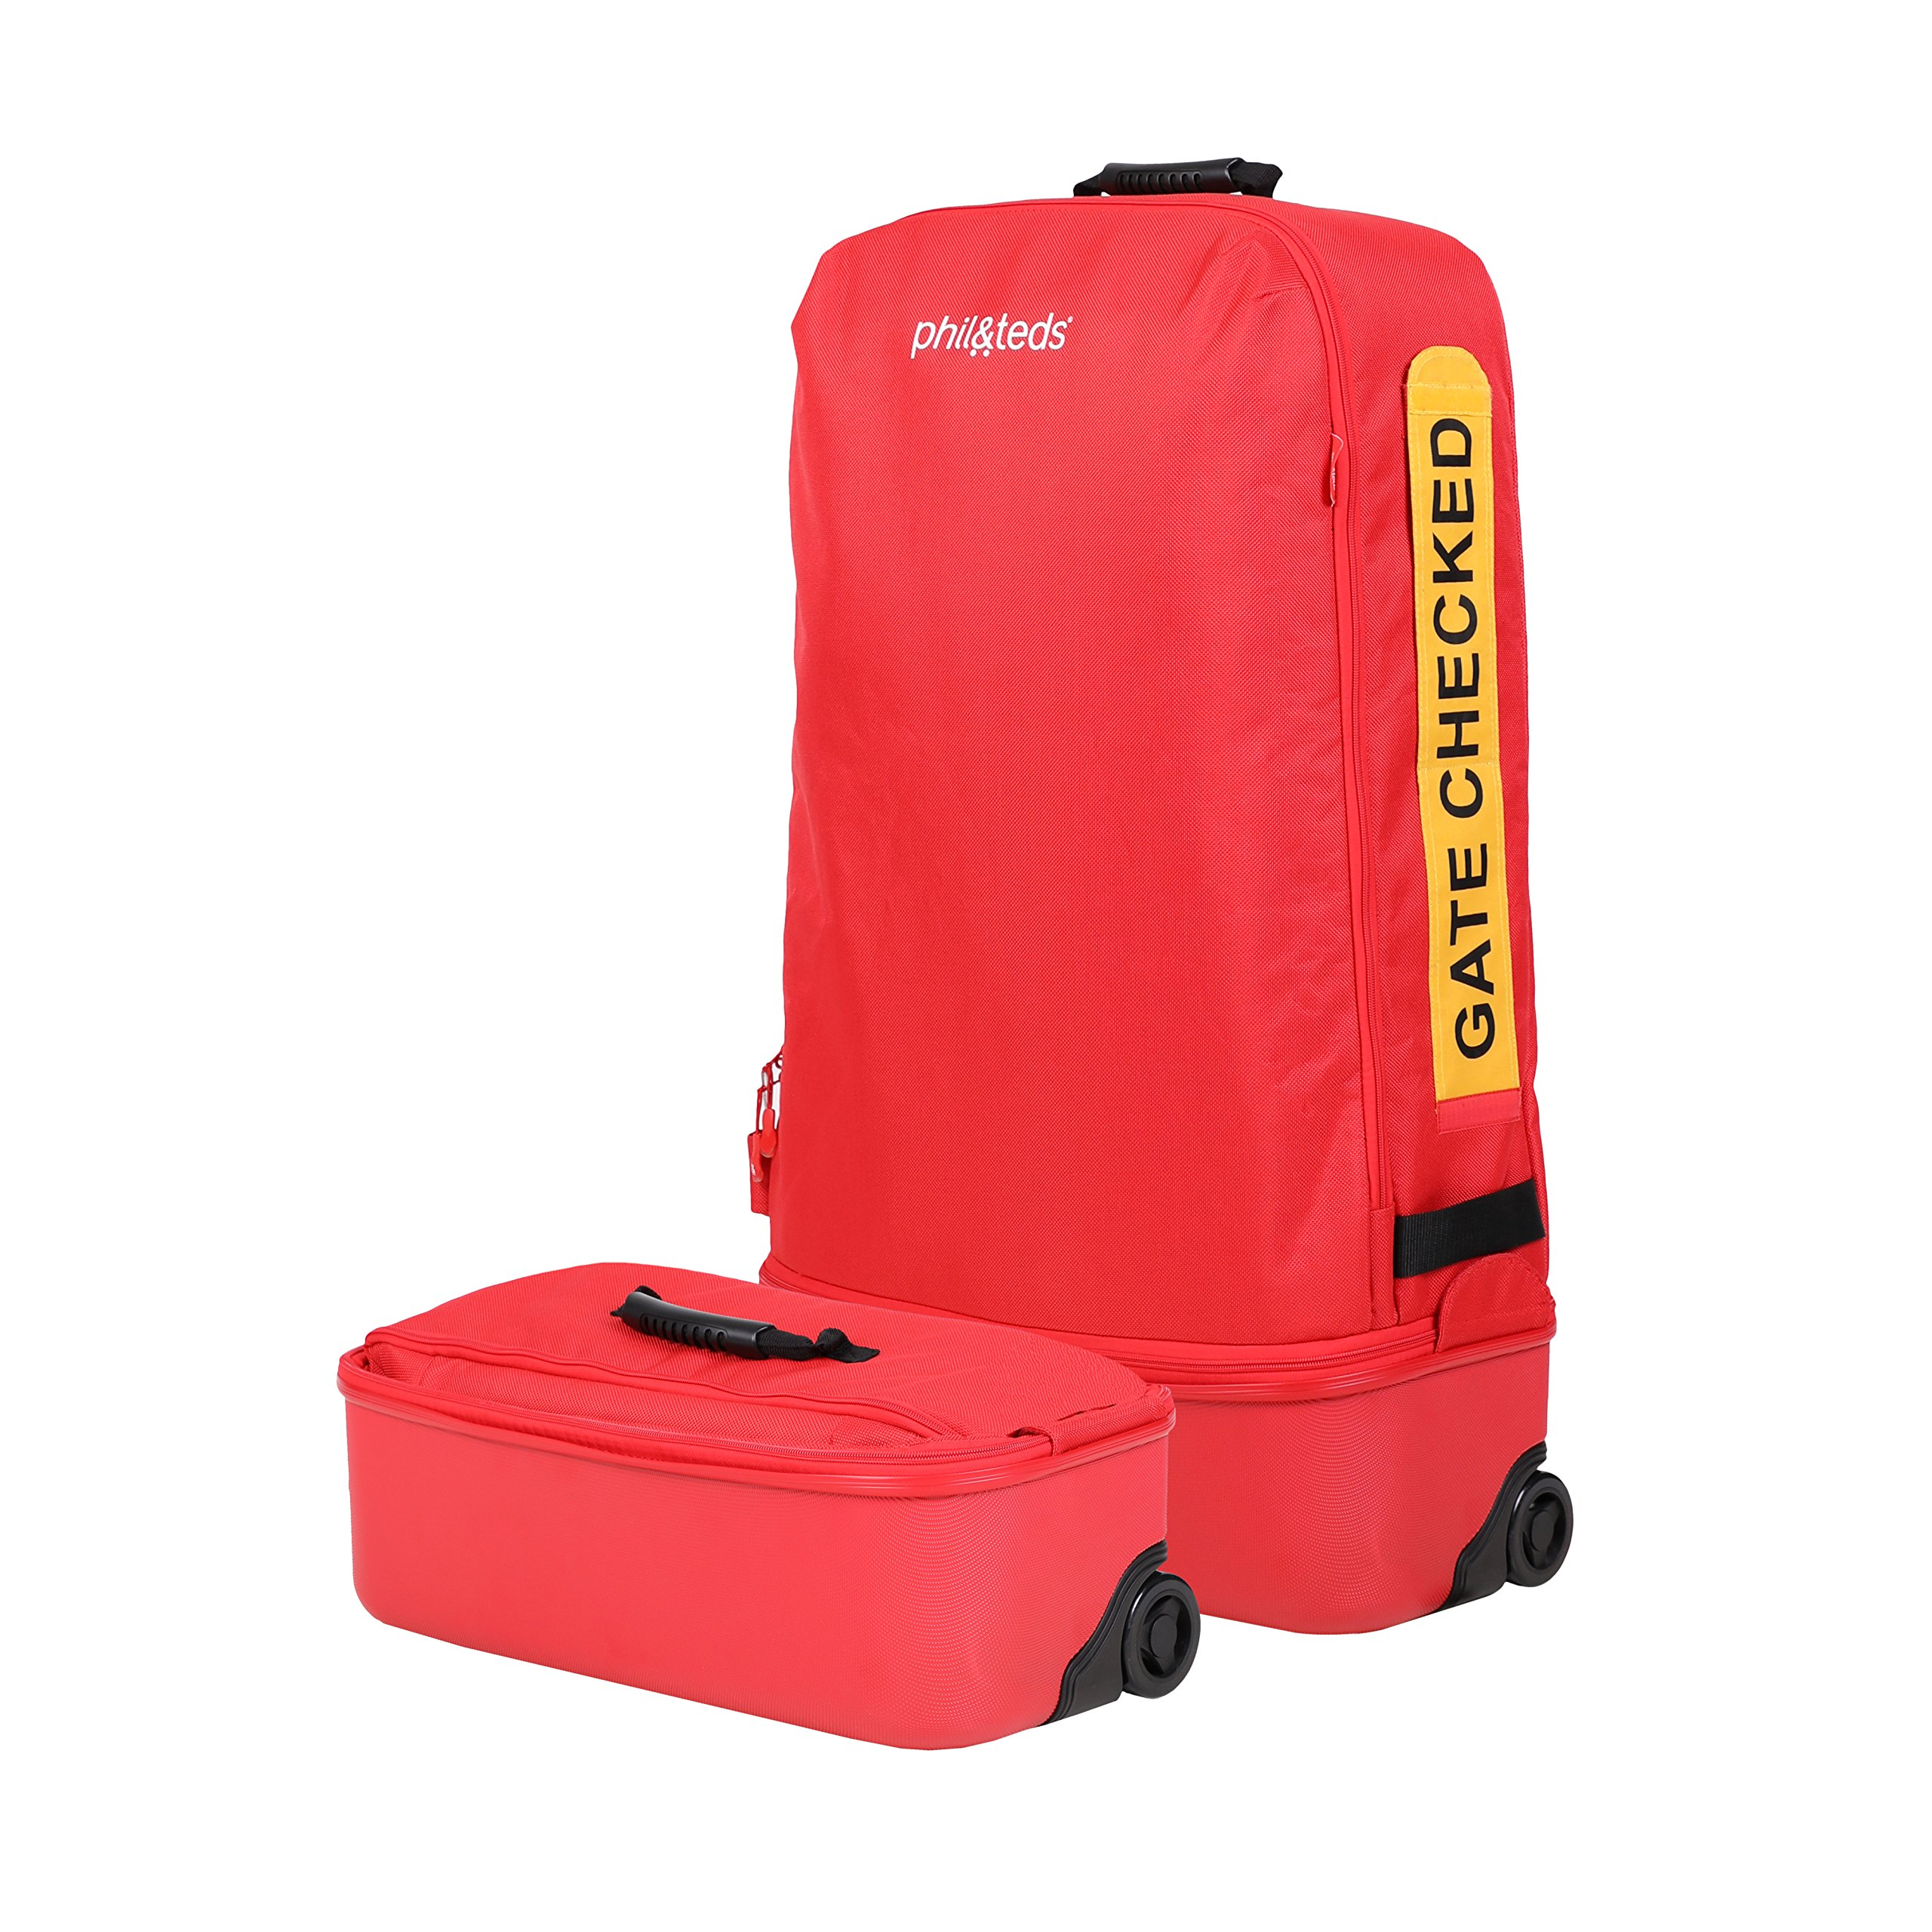 Phil&teds Travel Bag for Phil&teds, Mountain Buggy, Baby Jogger & britax Strollers